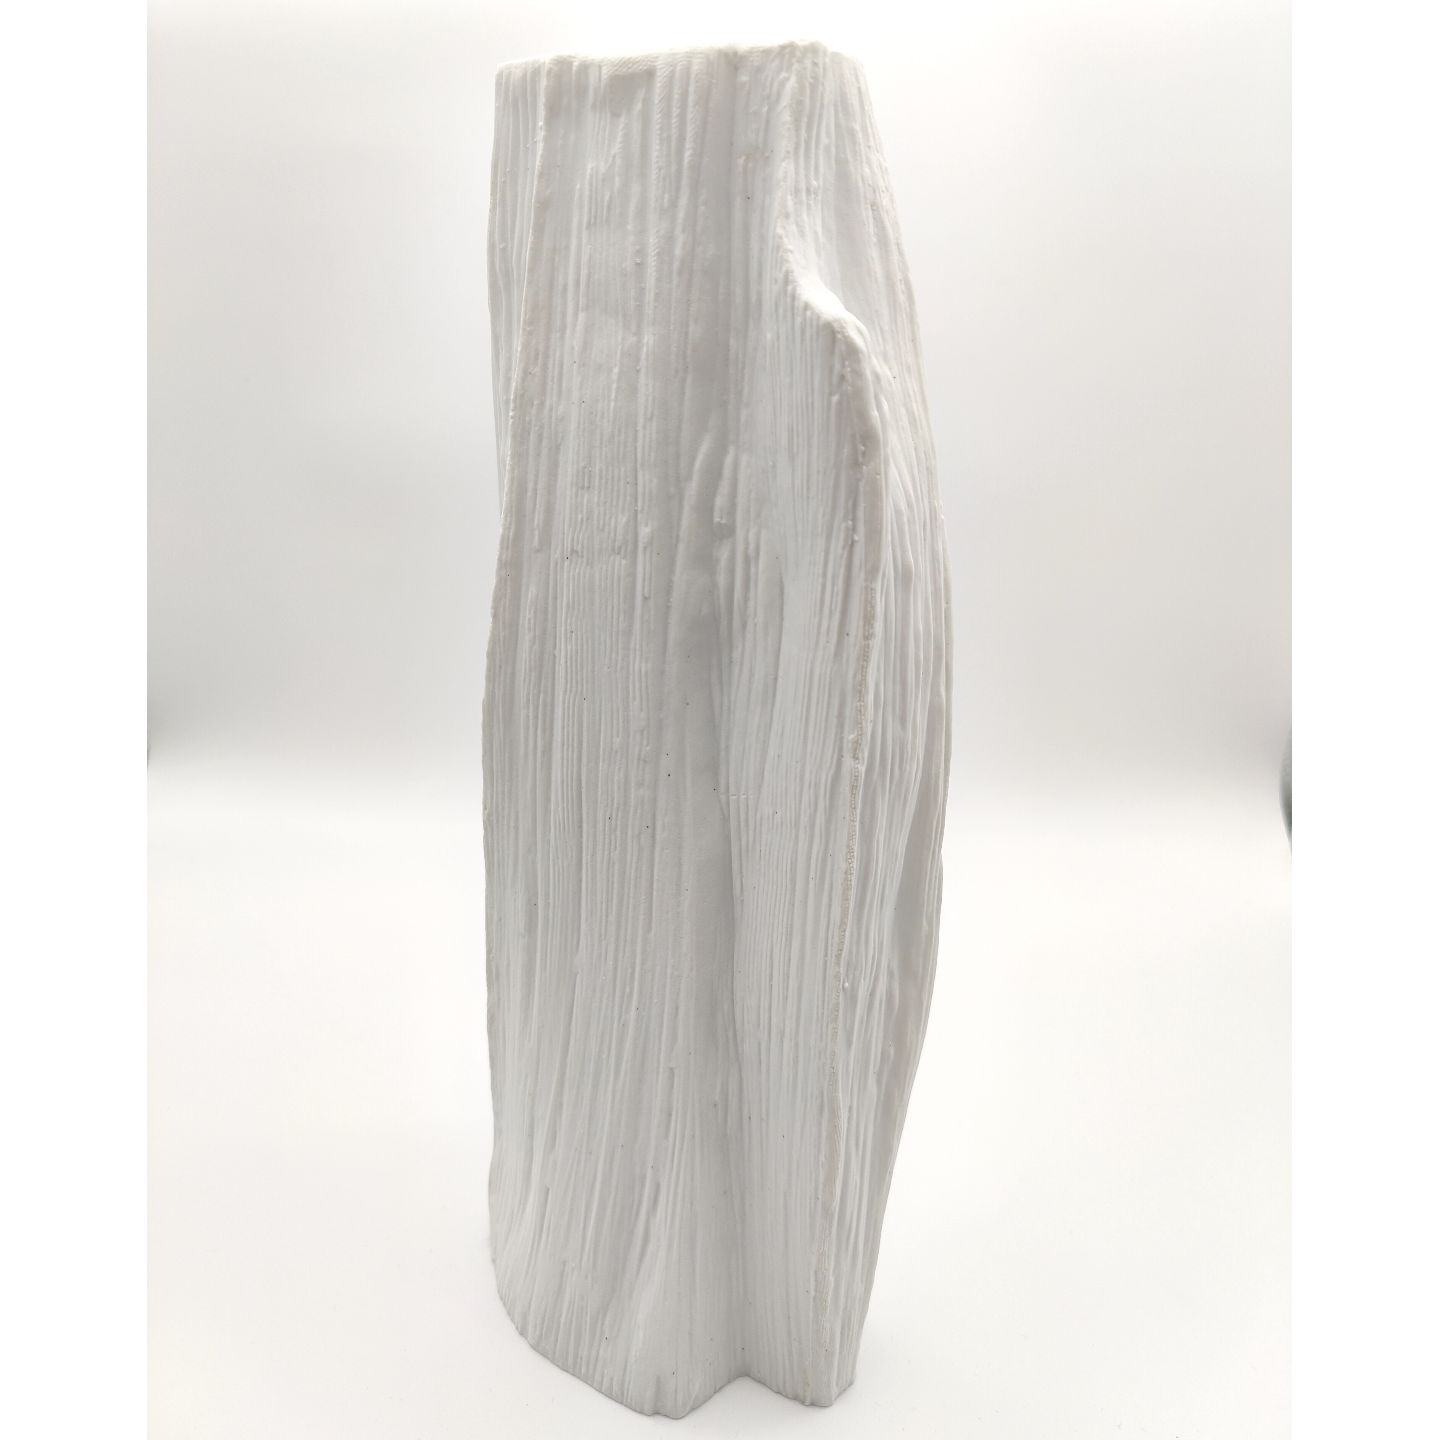 Tree Trunk Vases-Large